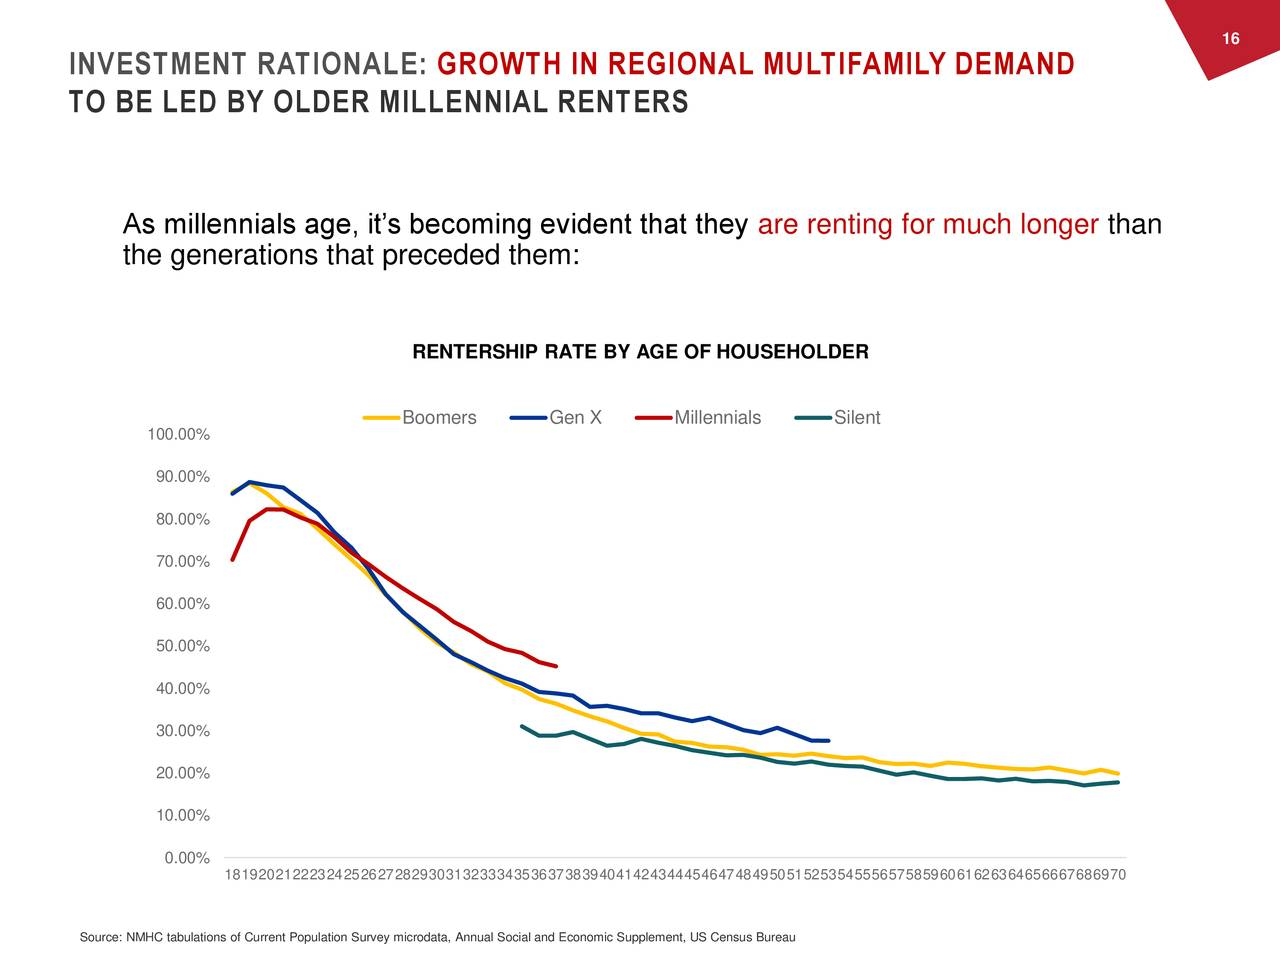 INVESTMENT RATIONALE: GROWTH IN REGIONAL MULTIFAMILY DEMAND TO BE LED BY OLDER MILLENNIAL RENTERS As millennials age, it's becoming evident that they are renting for much longer than the generations that preceded them: RENTERSHIP RATE BY AGE OF HOUSEHOLDER Boomers Gen X Millennials Silent 100.00% 90.00% 80.00% 70.00% 60.00% 50.00% 40.00% 30.00% 20.00% 10.00% 0.00% 1819202122232425262728293031323334353637383940414243444546474849505152535455565758596061626364656667686970 Source: NMHC tabulations of Current Population Survey microdata, Annual Social and Economic Supplement, US Census Bureau